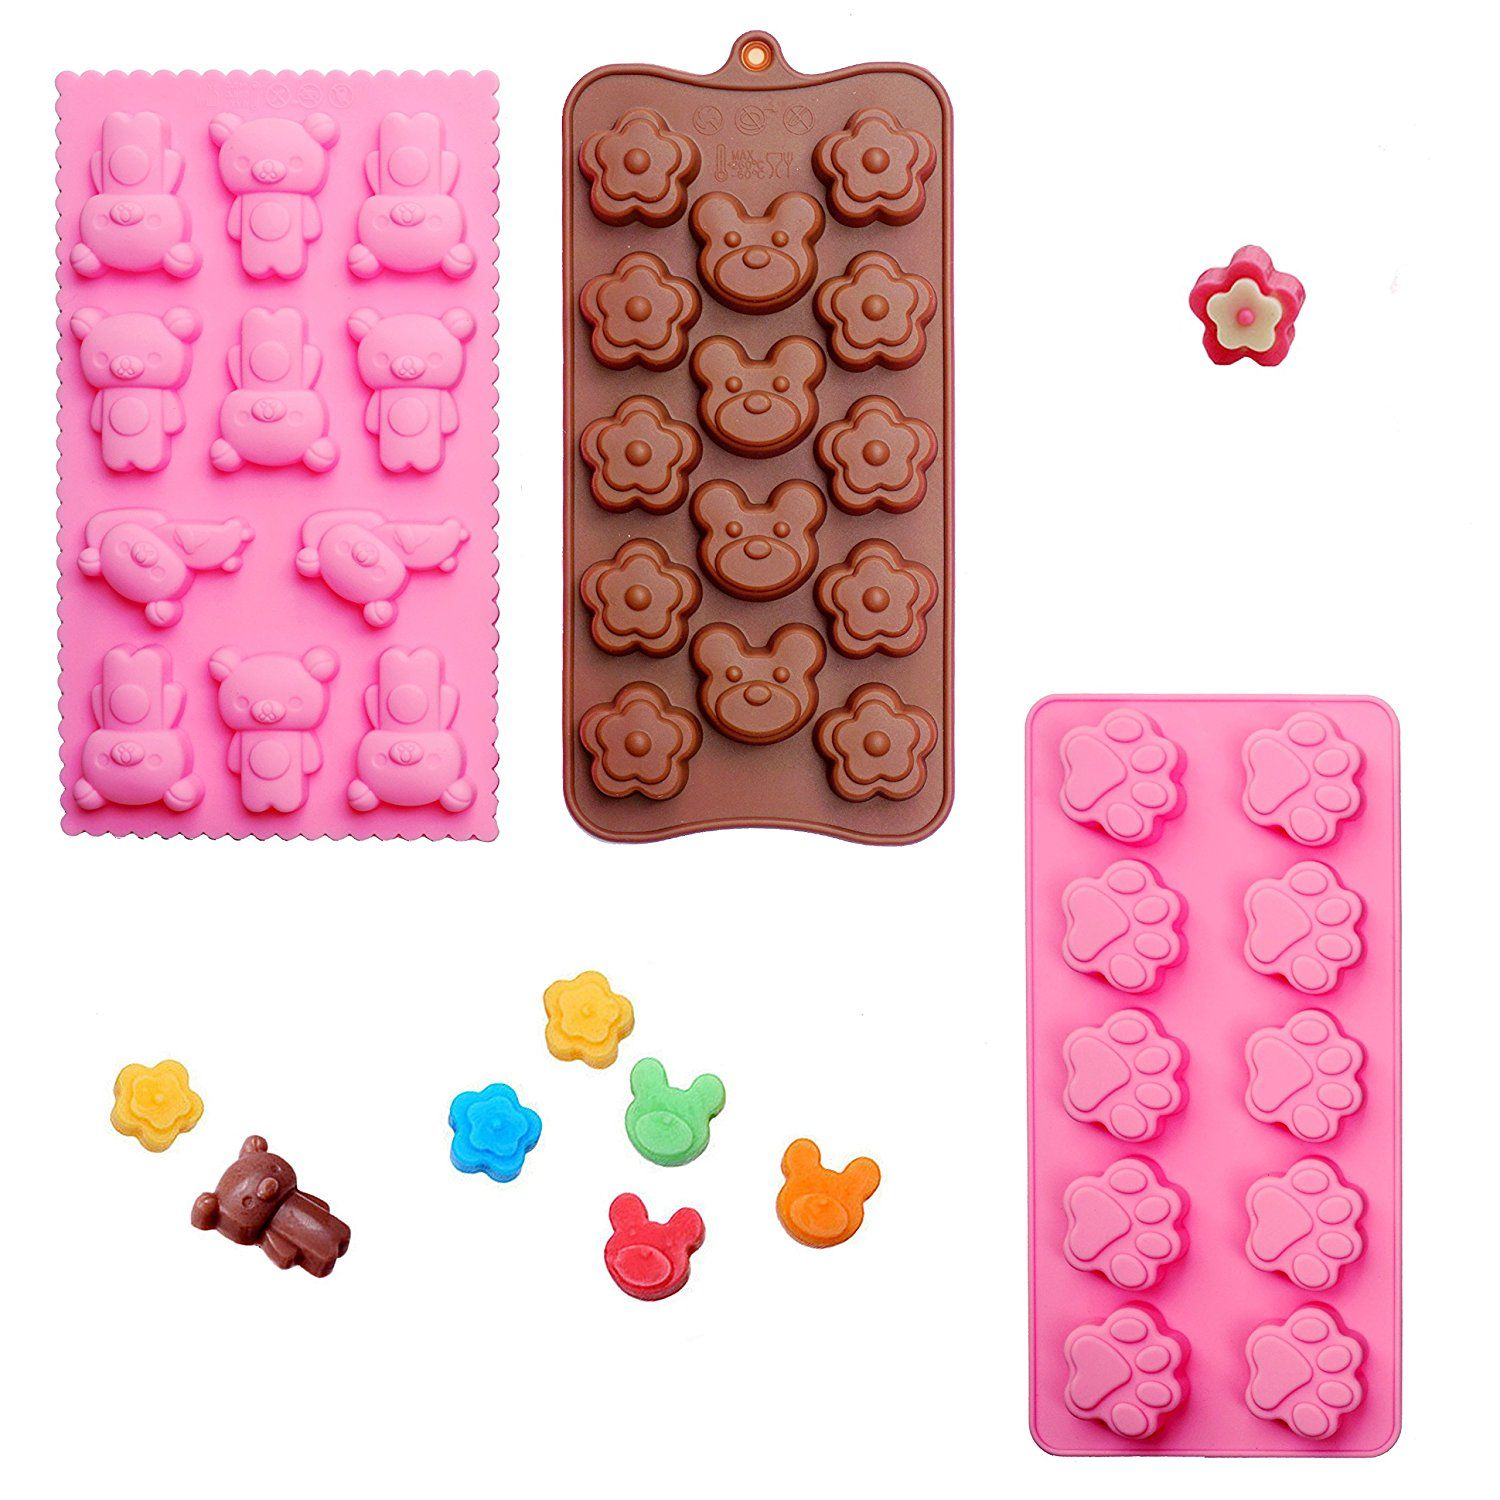 Fish Silicone Gummy Chocolate Baking Mold Ice Cube Tray Candy Jelly Mould DIY